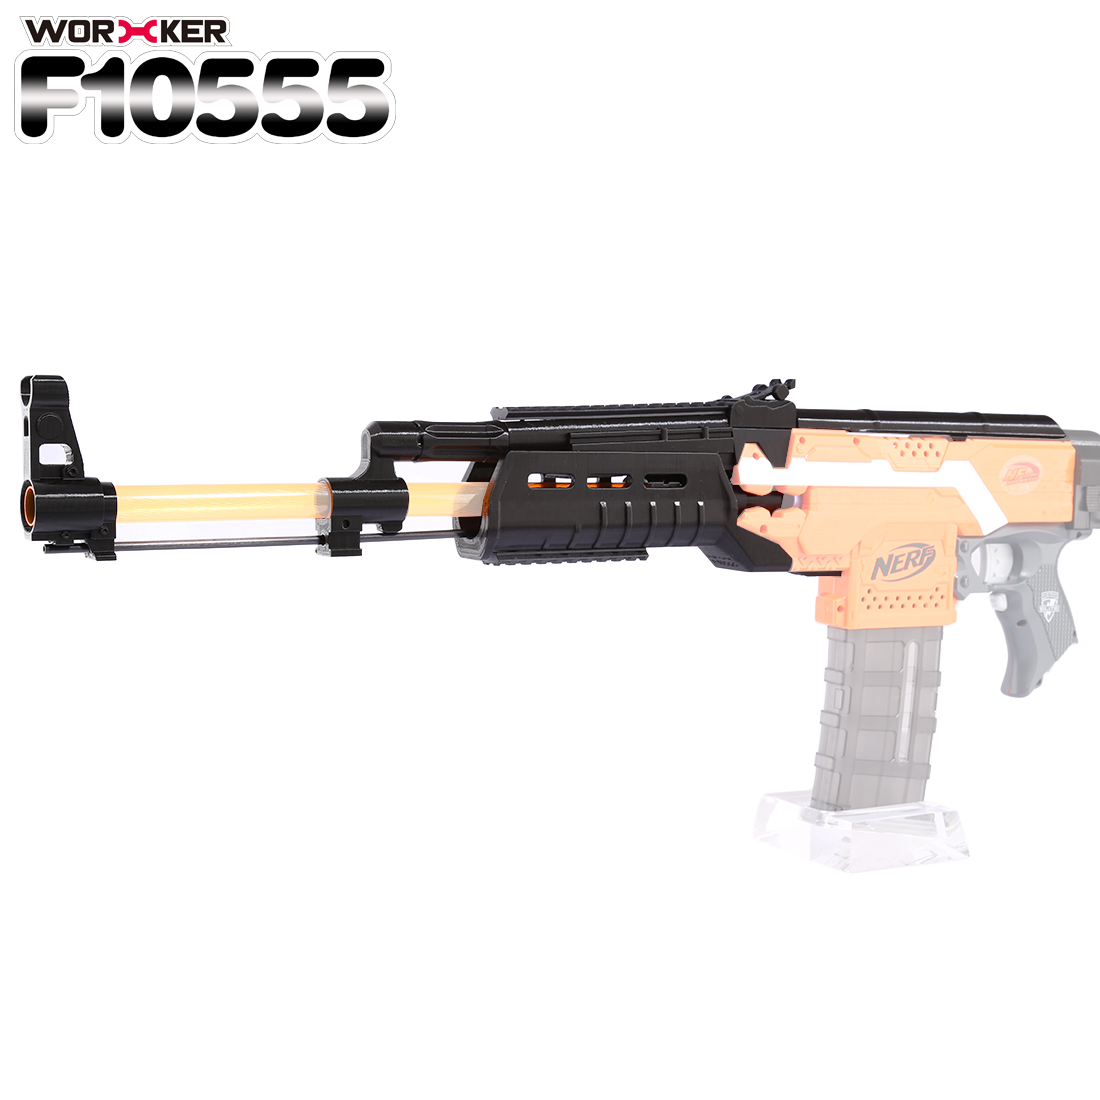 Worker f10555 3D Printing NO.105 Series Long Type Modified Kit Professional Toy Gun Accessories for Nerf Stryfe(Type D) - Black садовая детская тяпка truper atj kid 10555